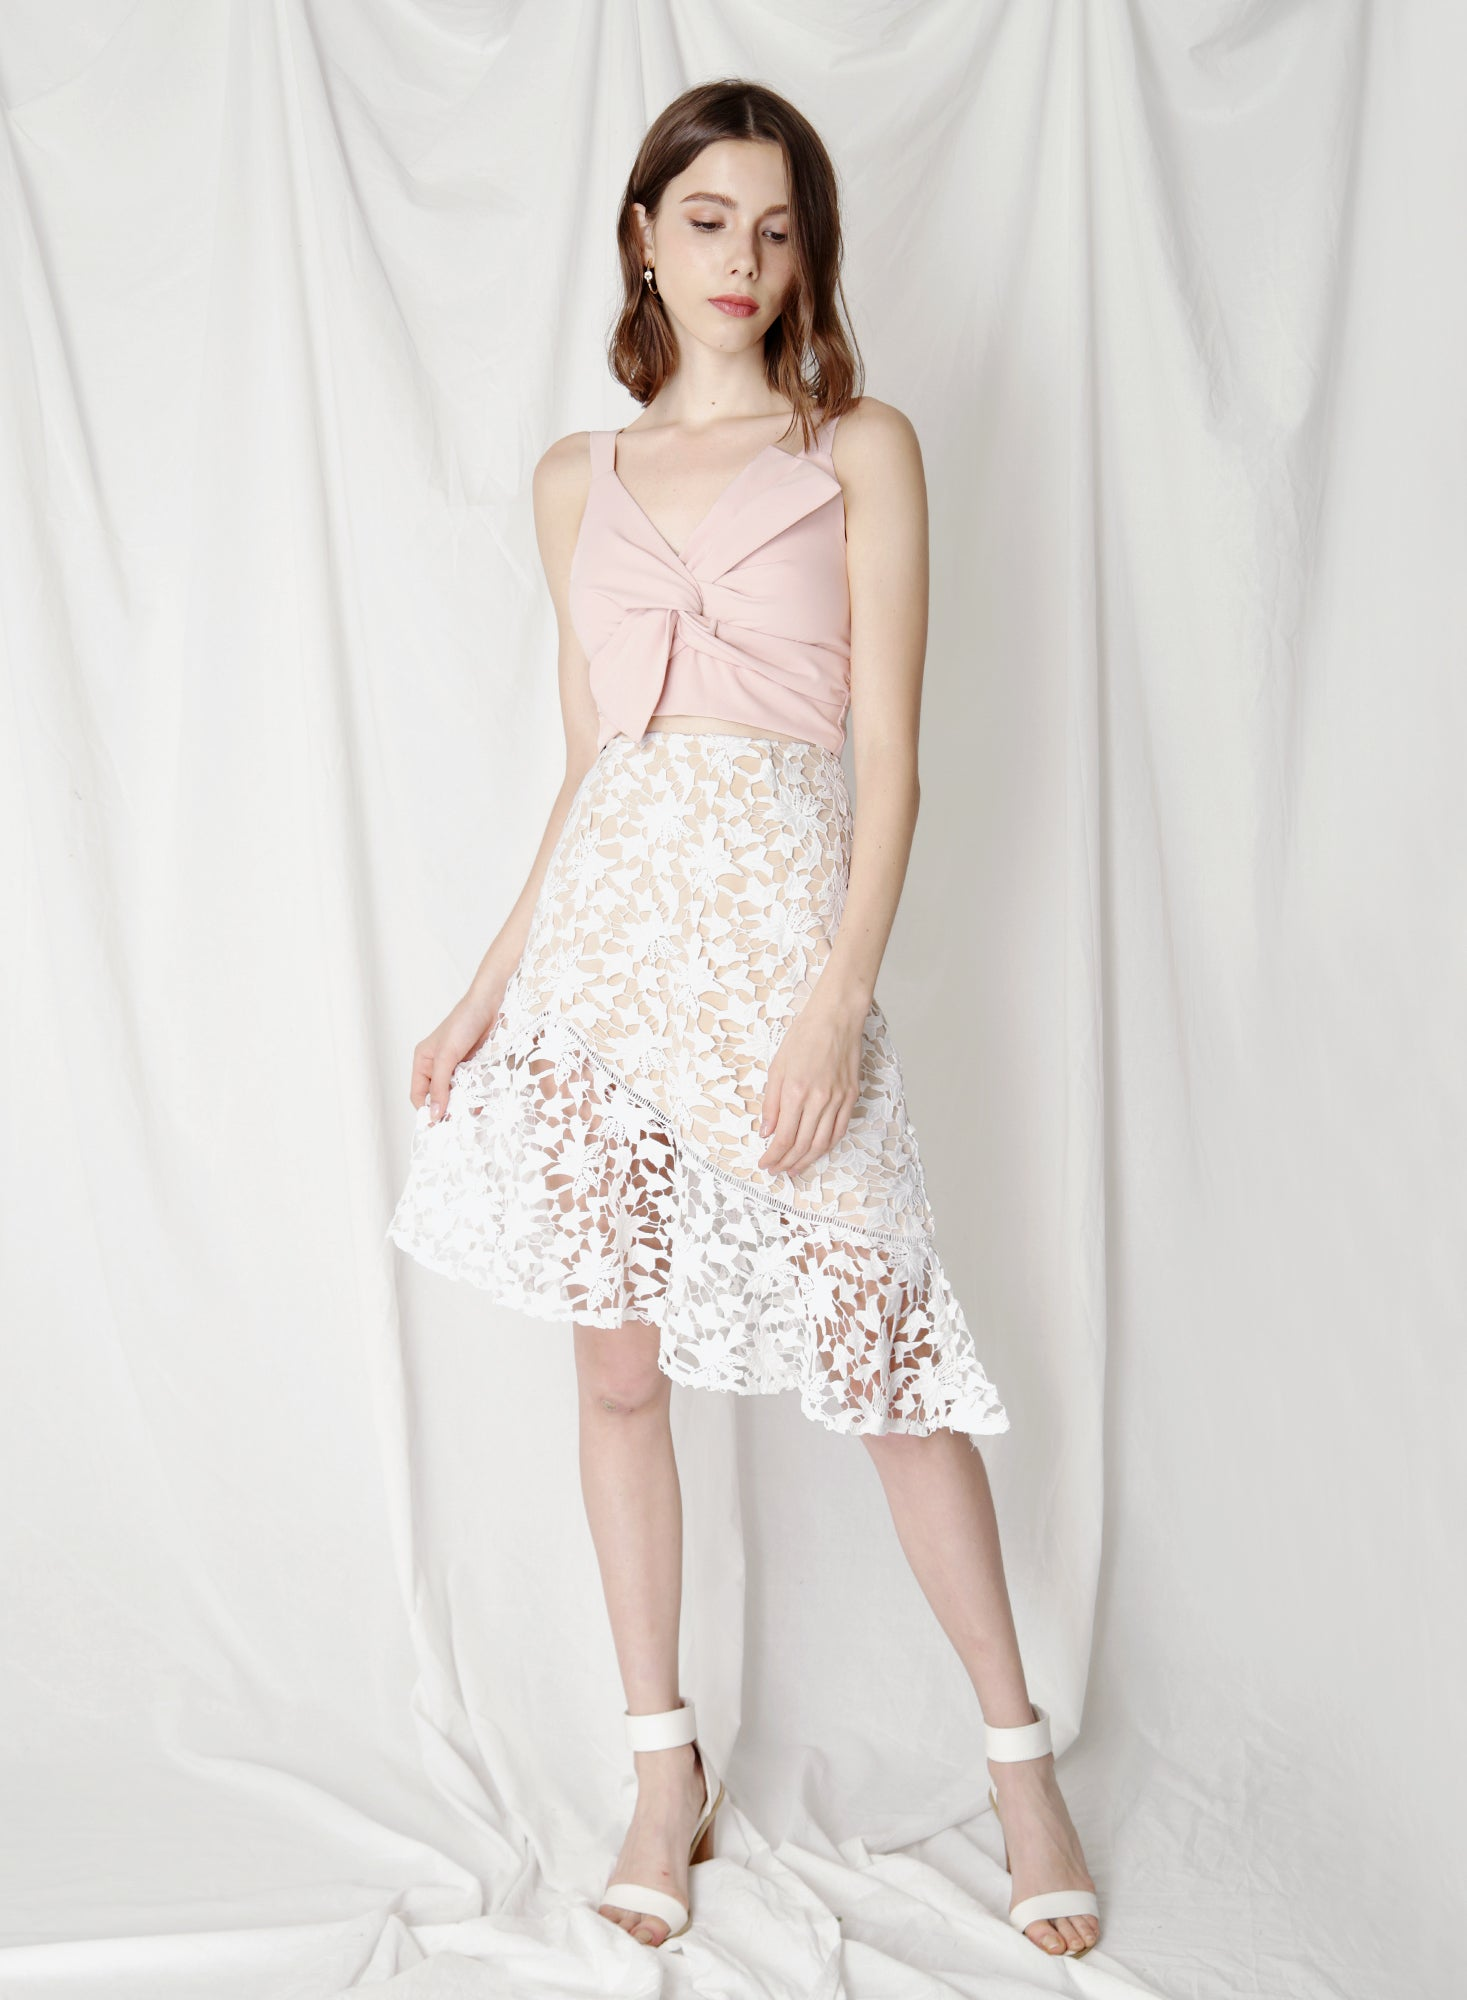 Oath Crochet Lace Skirt (White) at $ 38.50 only sold at And Well Dressed Online Fashion Store Singapore